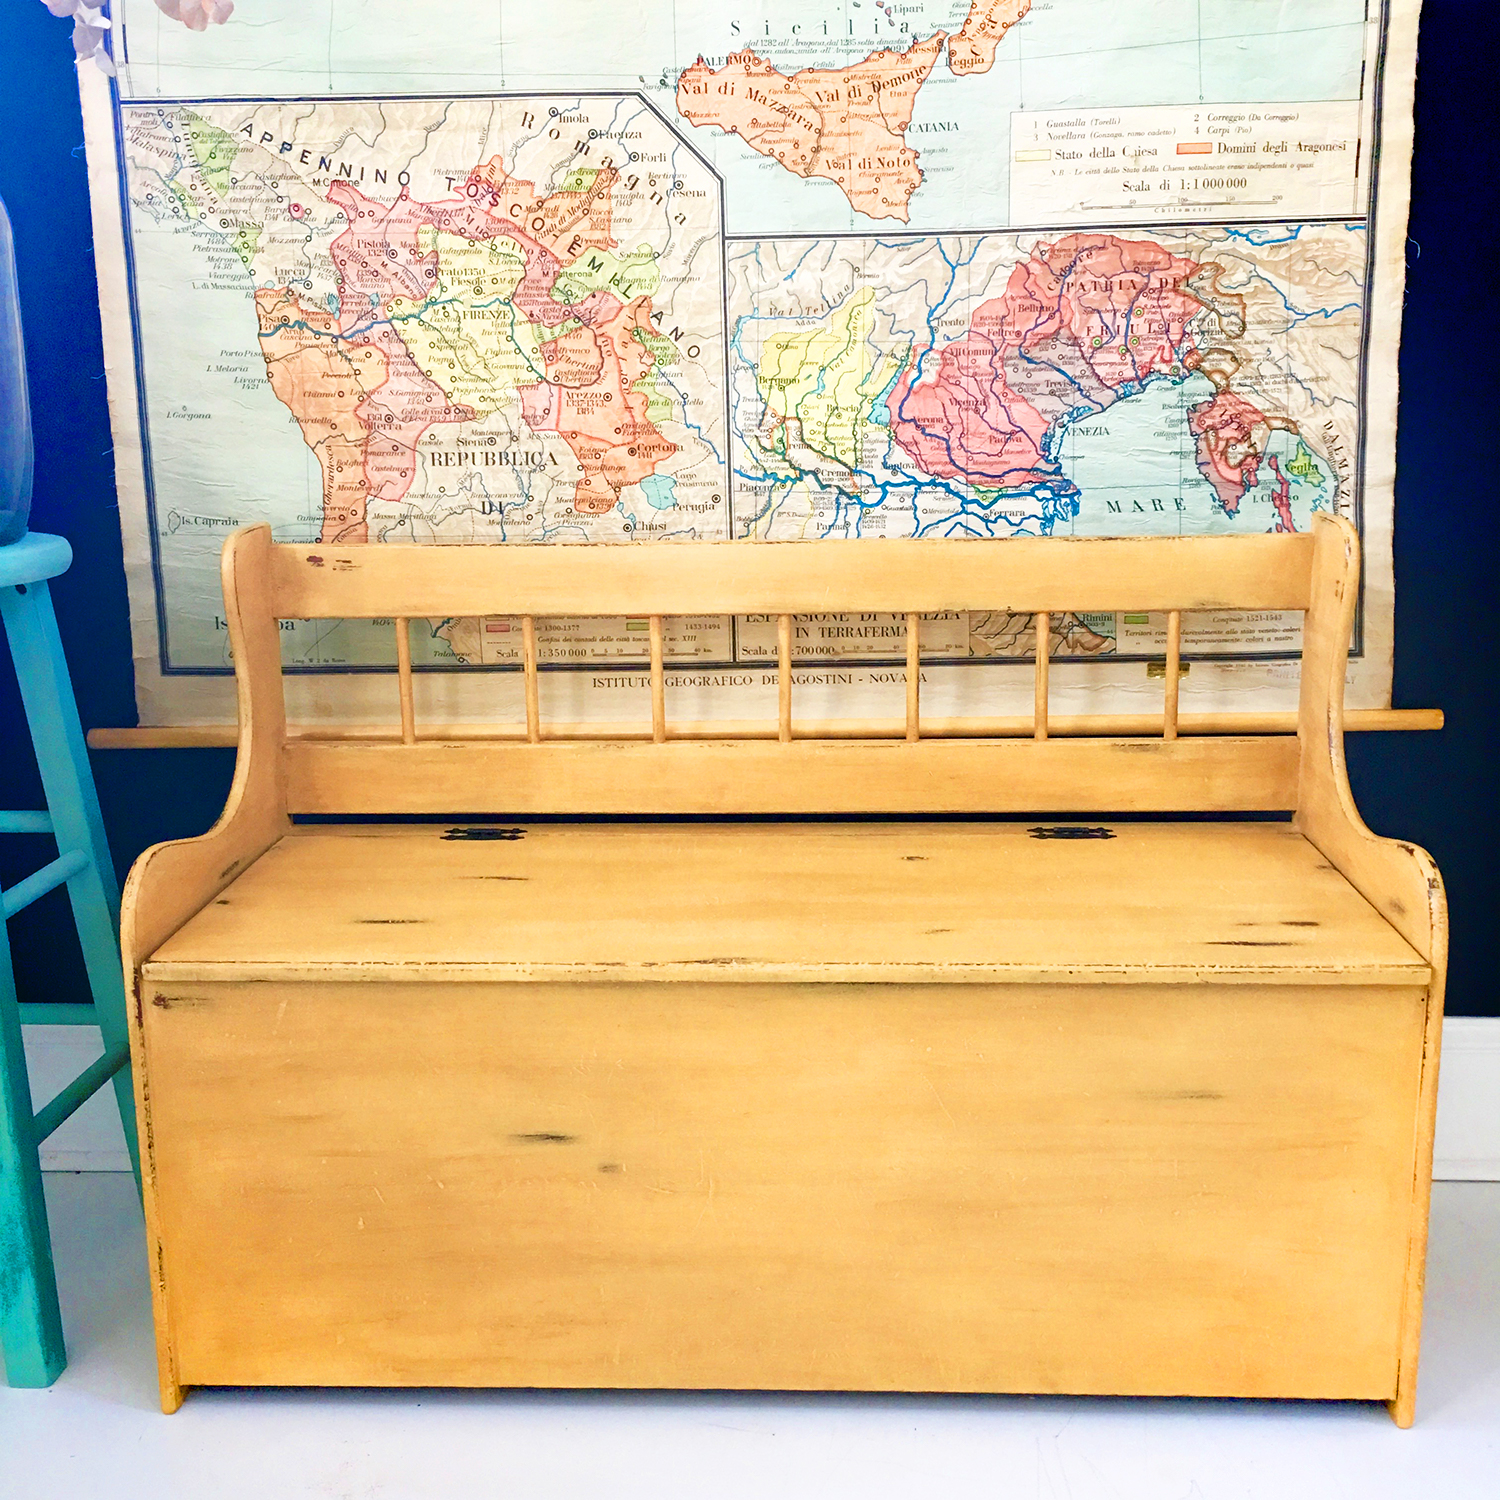 jo-torrijos-a-simpler-design-annie-sloan-chalk-paint-arles-mustard-yellow-storage-bench-painted-furniture-atlanta-6.jpg